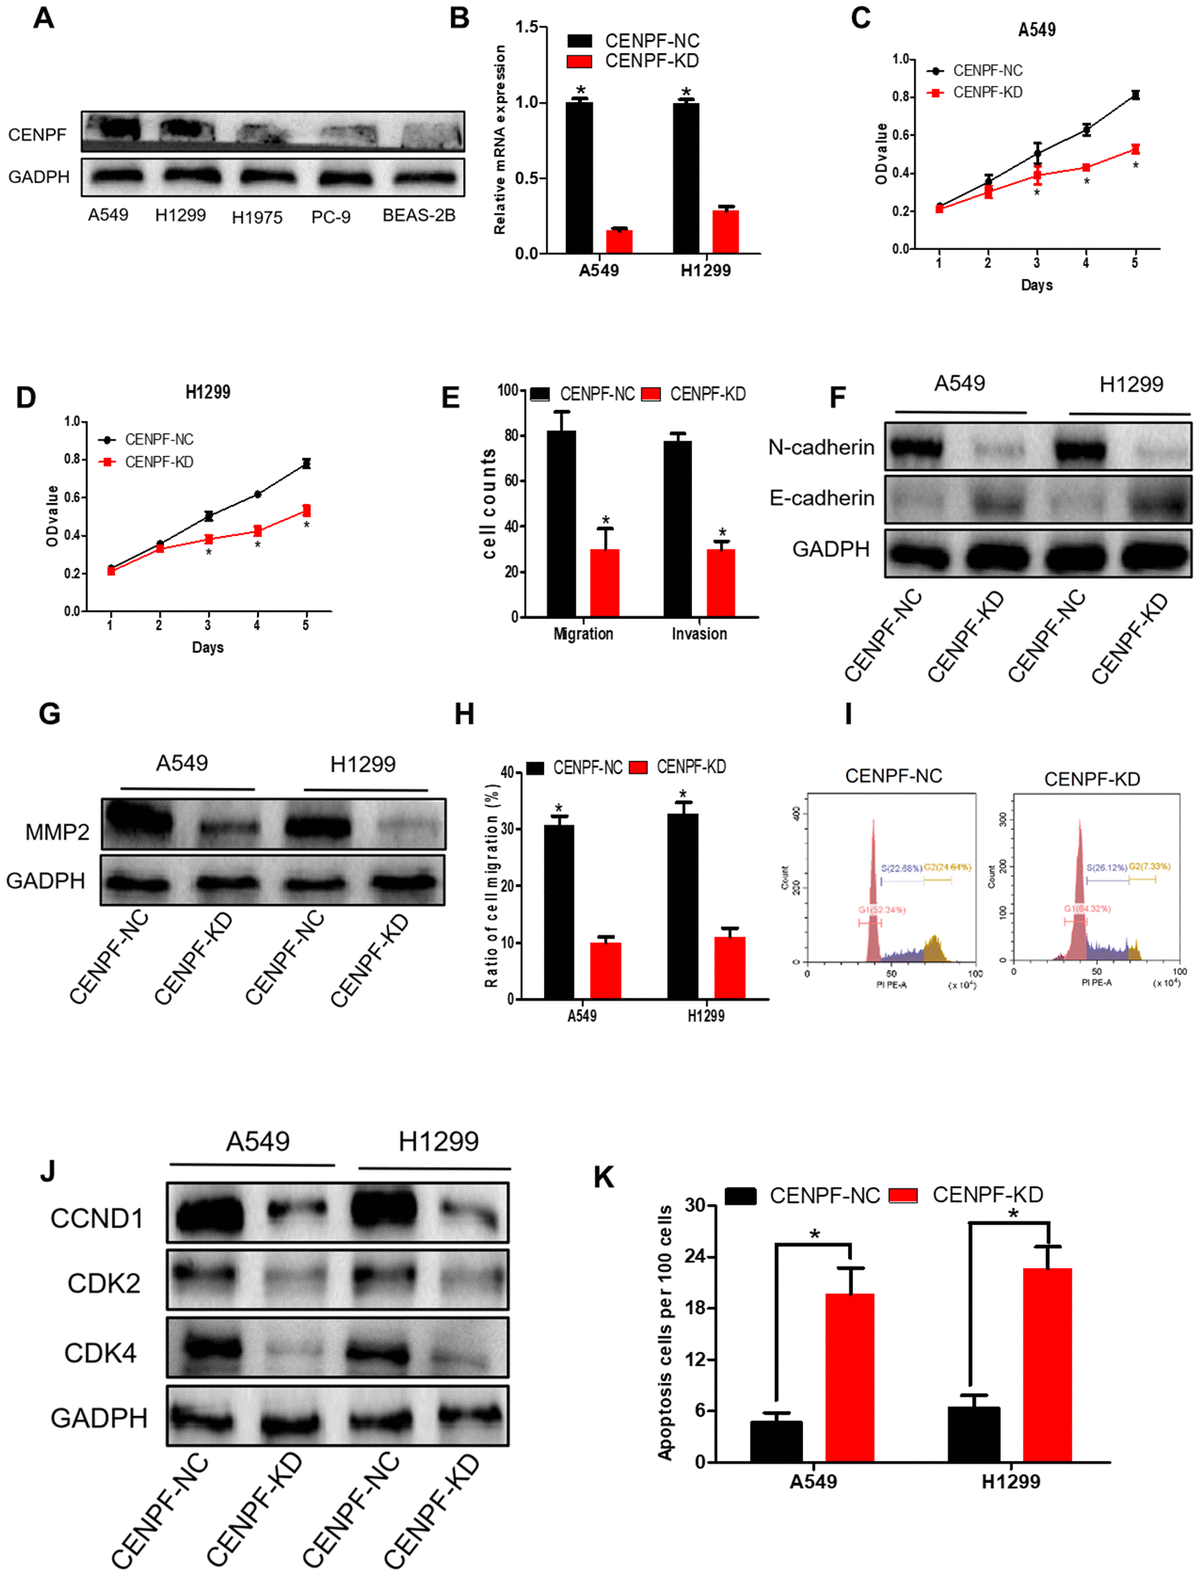 Knockdown of CENPF inhibits cell proliferation, migration, invasion and increases apoptosis of LUAD cells. (A) The protein level of CENPF in A549 and H1299 cell lines were higher than in normal cell lines BEAS-2B and other LUAD cells. GAPDH served as the internal control. (The corresponding gray value are shown in Supplementary Figure 3). (B) The knockdown efficiency of LV-CENPF sh or LV-NC transfected with A549 and H1299 cells was verified by RT-qPCR. *P C, D) MTT showed that CENPF knockdown suppressed the proliferative viability of cells in A549 and H1299 cells. *P E) Migration assays and invasion assays revealed that CENPF-KD decreased cell migration and invasion abilities of A549. (F, G) The related protein E-cadherin was significantly increased (P=0.009, Figure 4F; The corresponding gray value are shown in Supplementary Figure 3G), and N-cadherin and MMP2 were significantly decreased when compared with NC group (P=0.004, 0.012; The corresponding gray value are shown in Supplementary Figure 3H). (H) Quantified histograms of scratch experiment of A549 and H1299. (I) The cell percentage and DNA content were significantly increased in the G1 phase in the CENPF-KD group(P=0.011). (J) The expression of CCND1, CDK2 and CDK4 was significantly lowered in CENPF-KD group (P=0.022, 0.001, 0.002; The corresponding gray value are shown in Supplementary Figure 3M). (K) CENPF knockdown increased apoptosis of A549 and H1299 cell lines (P=0.001, 0.001). Each experiment was performed in triplicate and repeated three times. P values were calculated with two-tailed unpaired Student's t test.